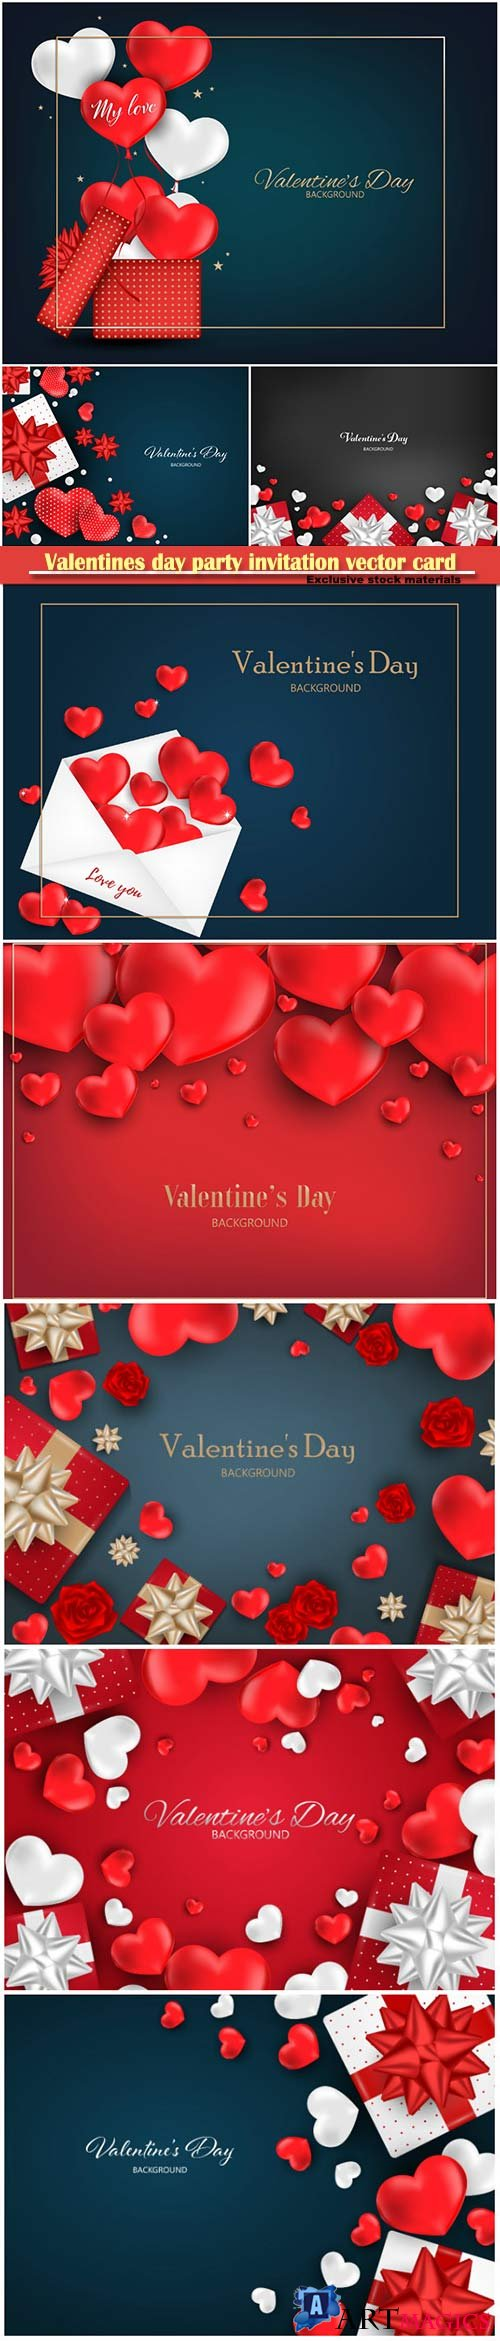 Valentines day party invitation vector card # 38